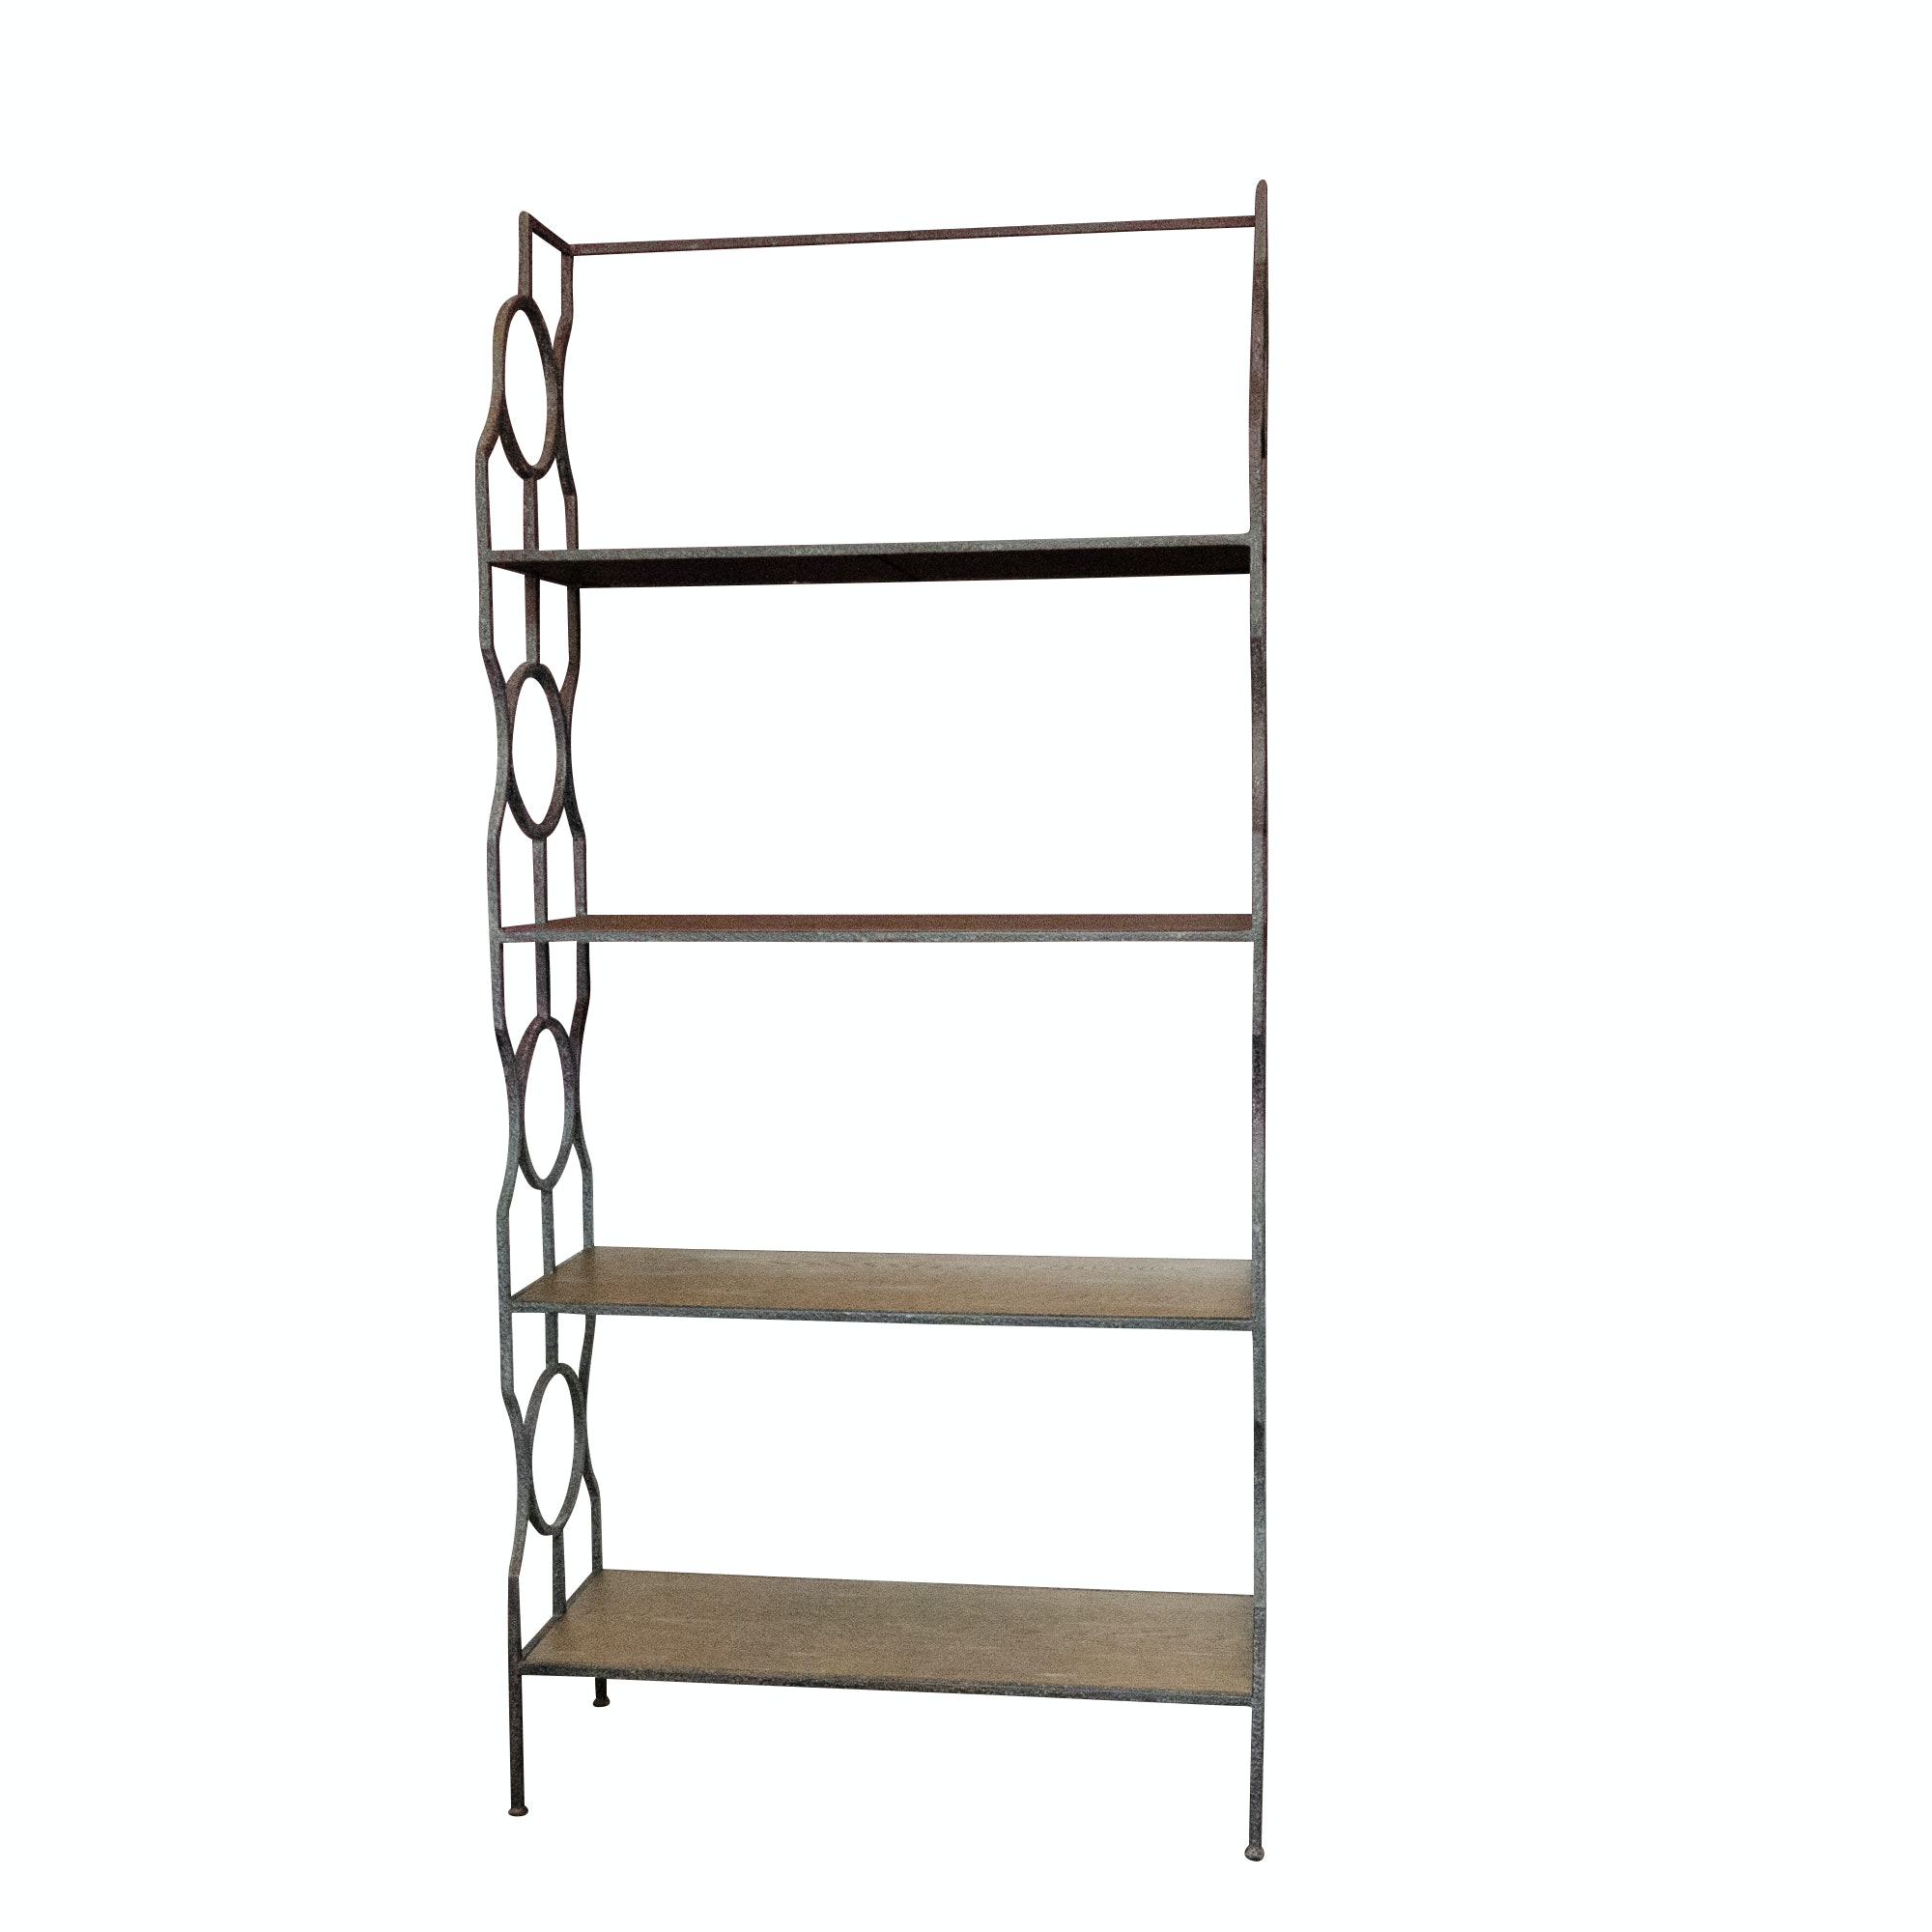 Contemporary Four-Tier Metal and Wood Bookcase with Geometric Details